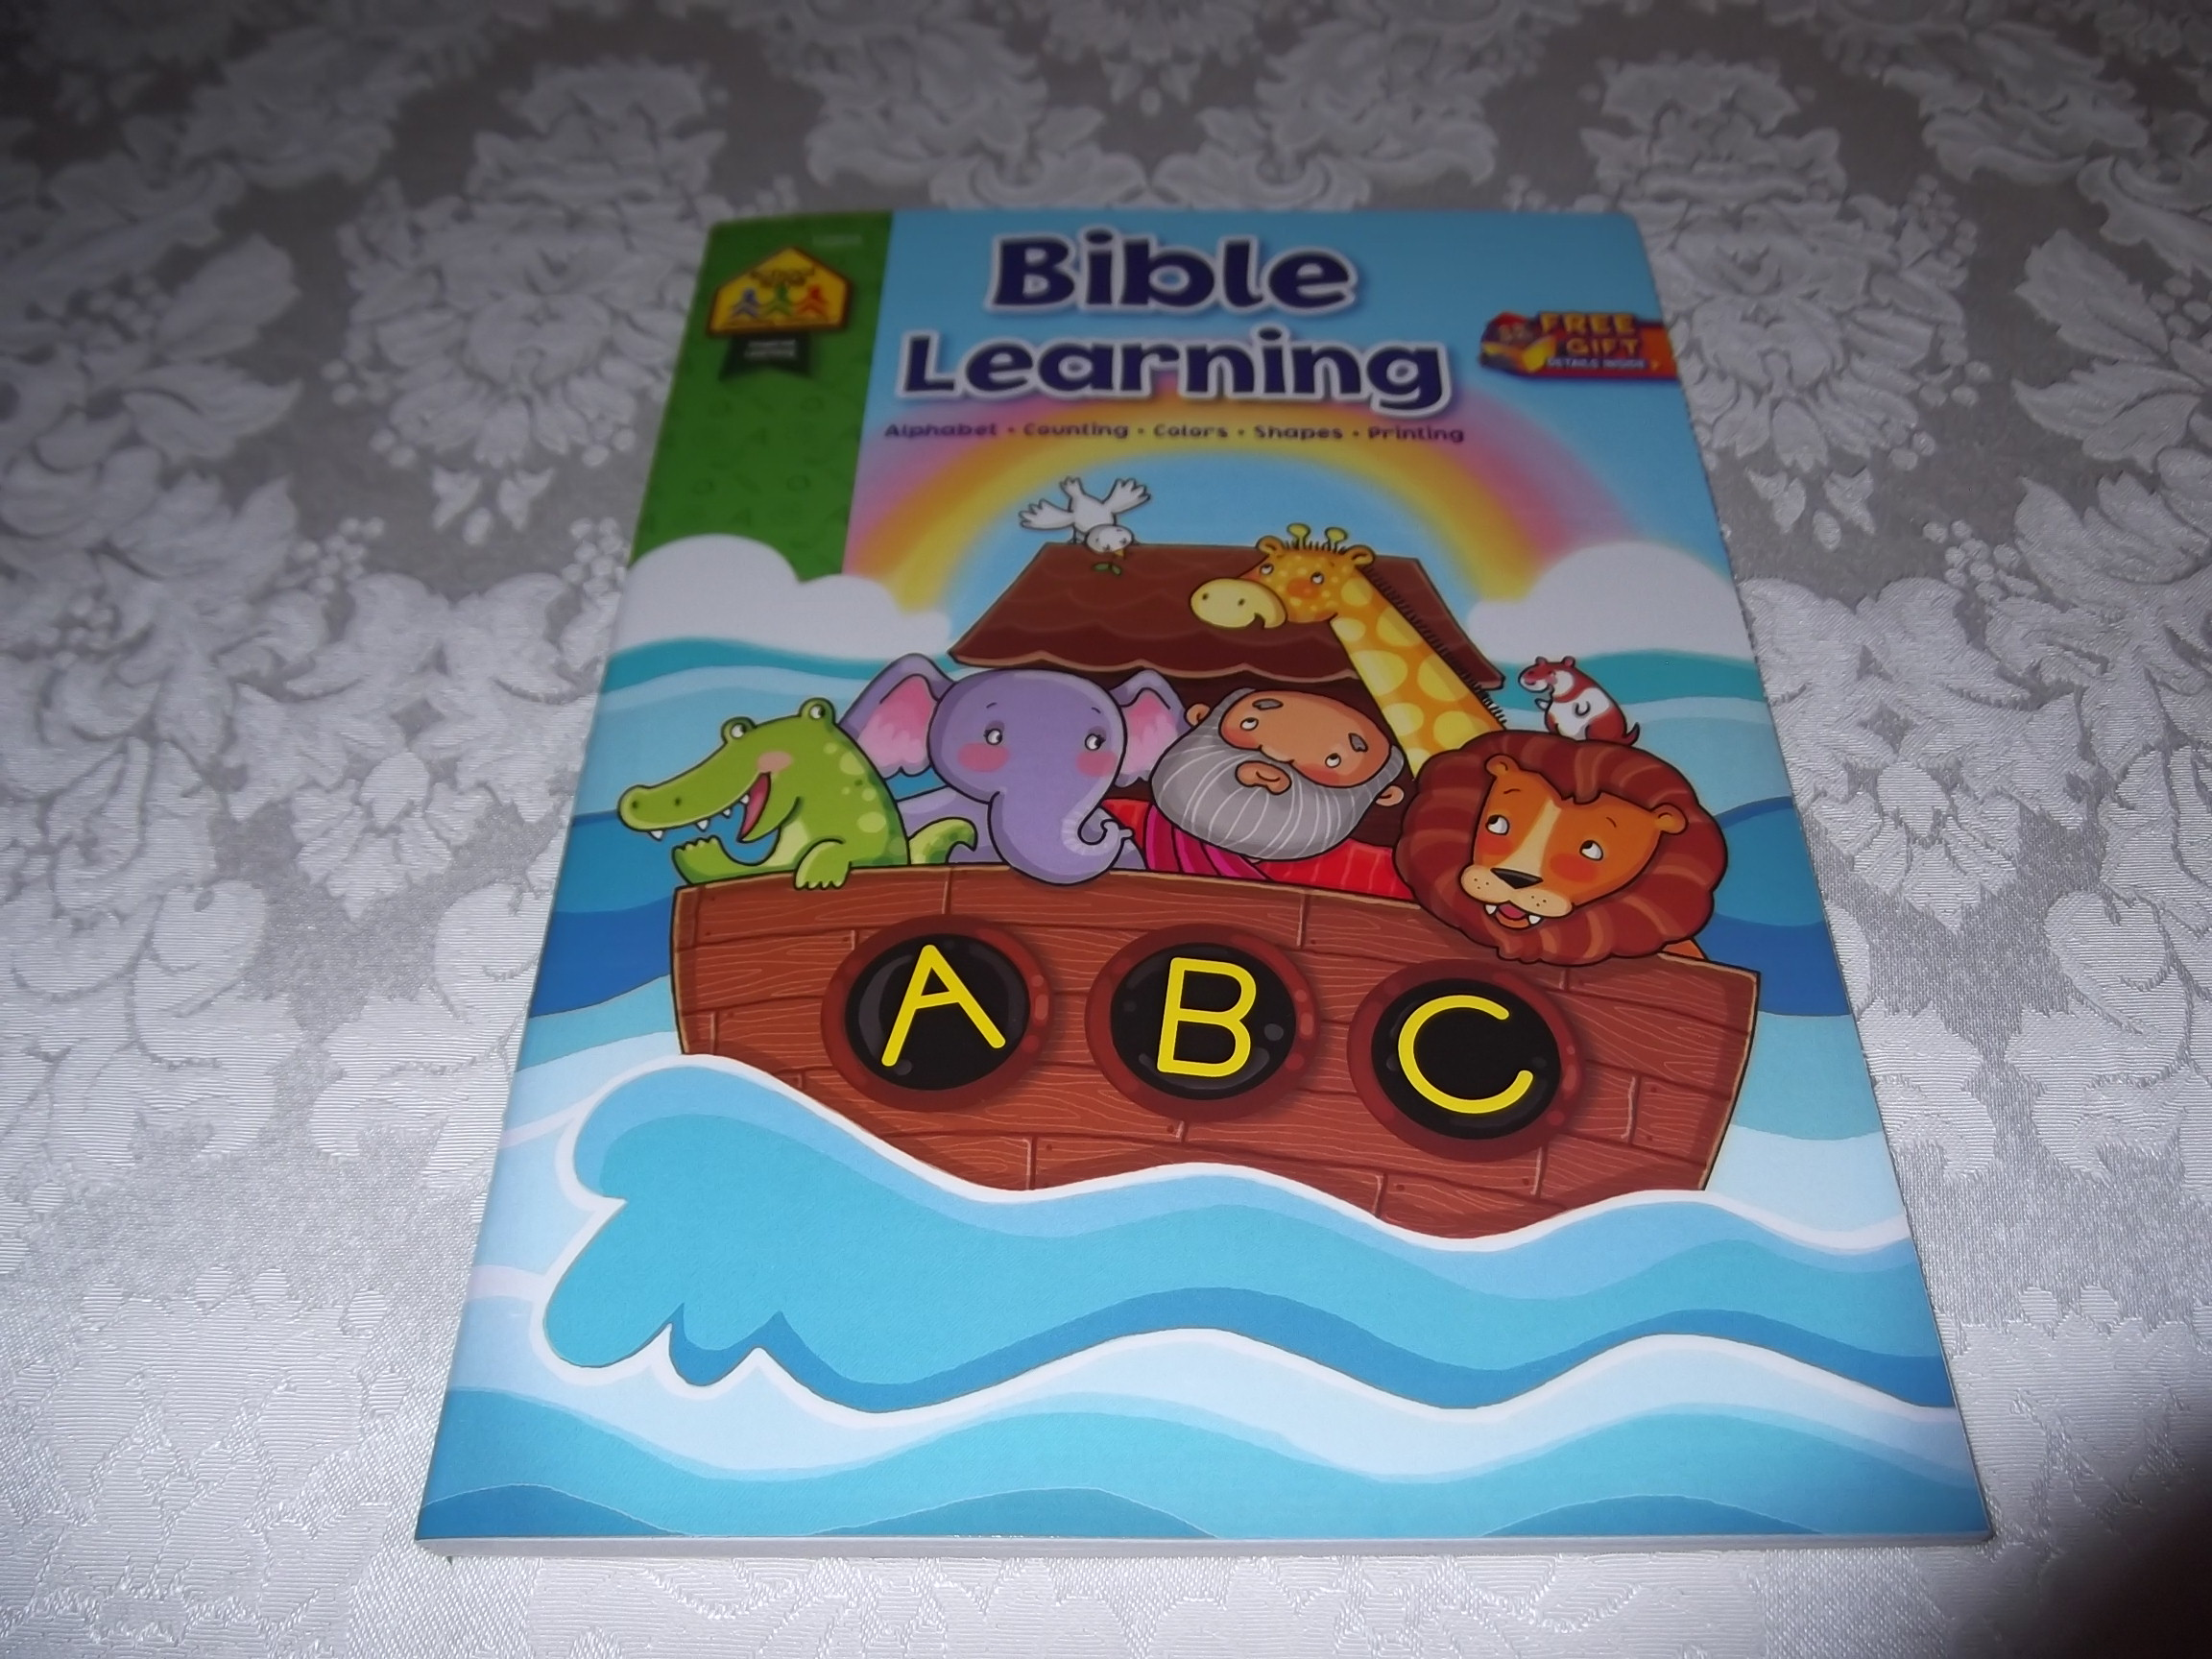 Bible Learning School Zone Publishing ABCs Numbers Colors Shapes